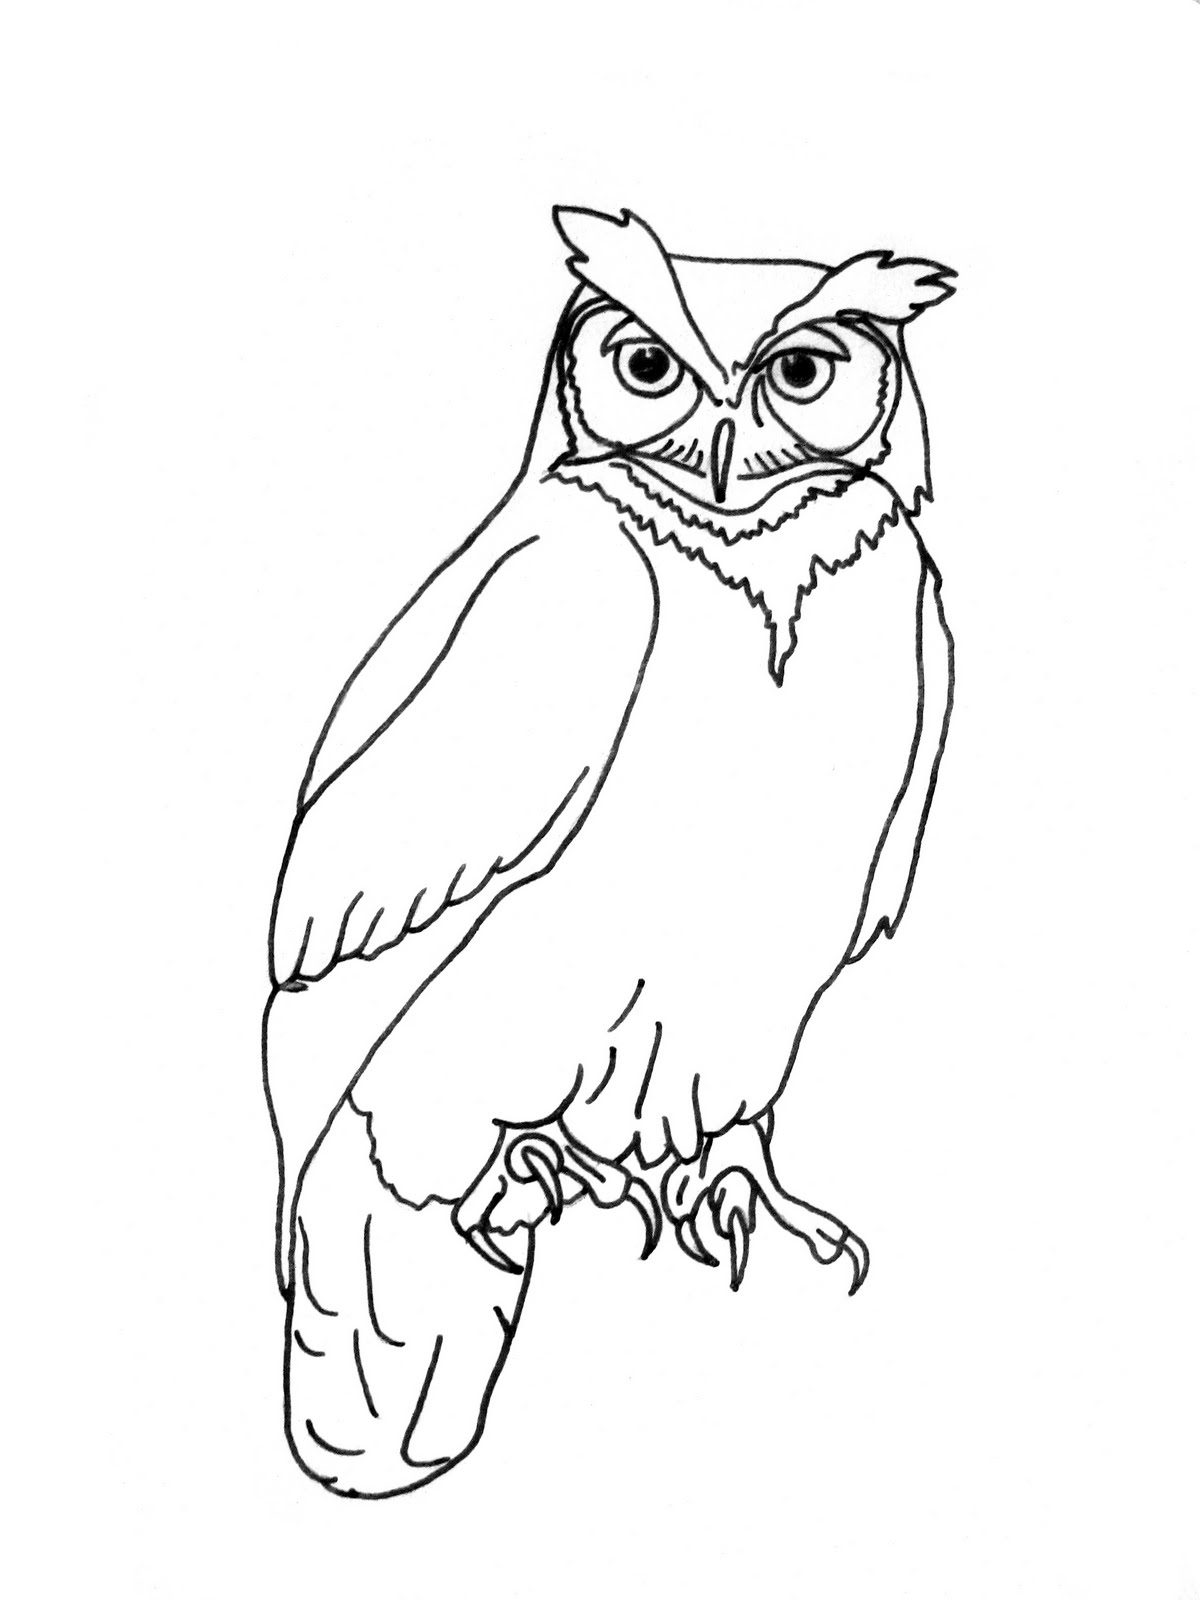 Realistic Owl Drawing at GetDrawings.com | Free for personal use ...